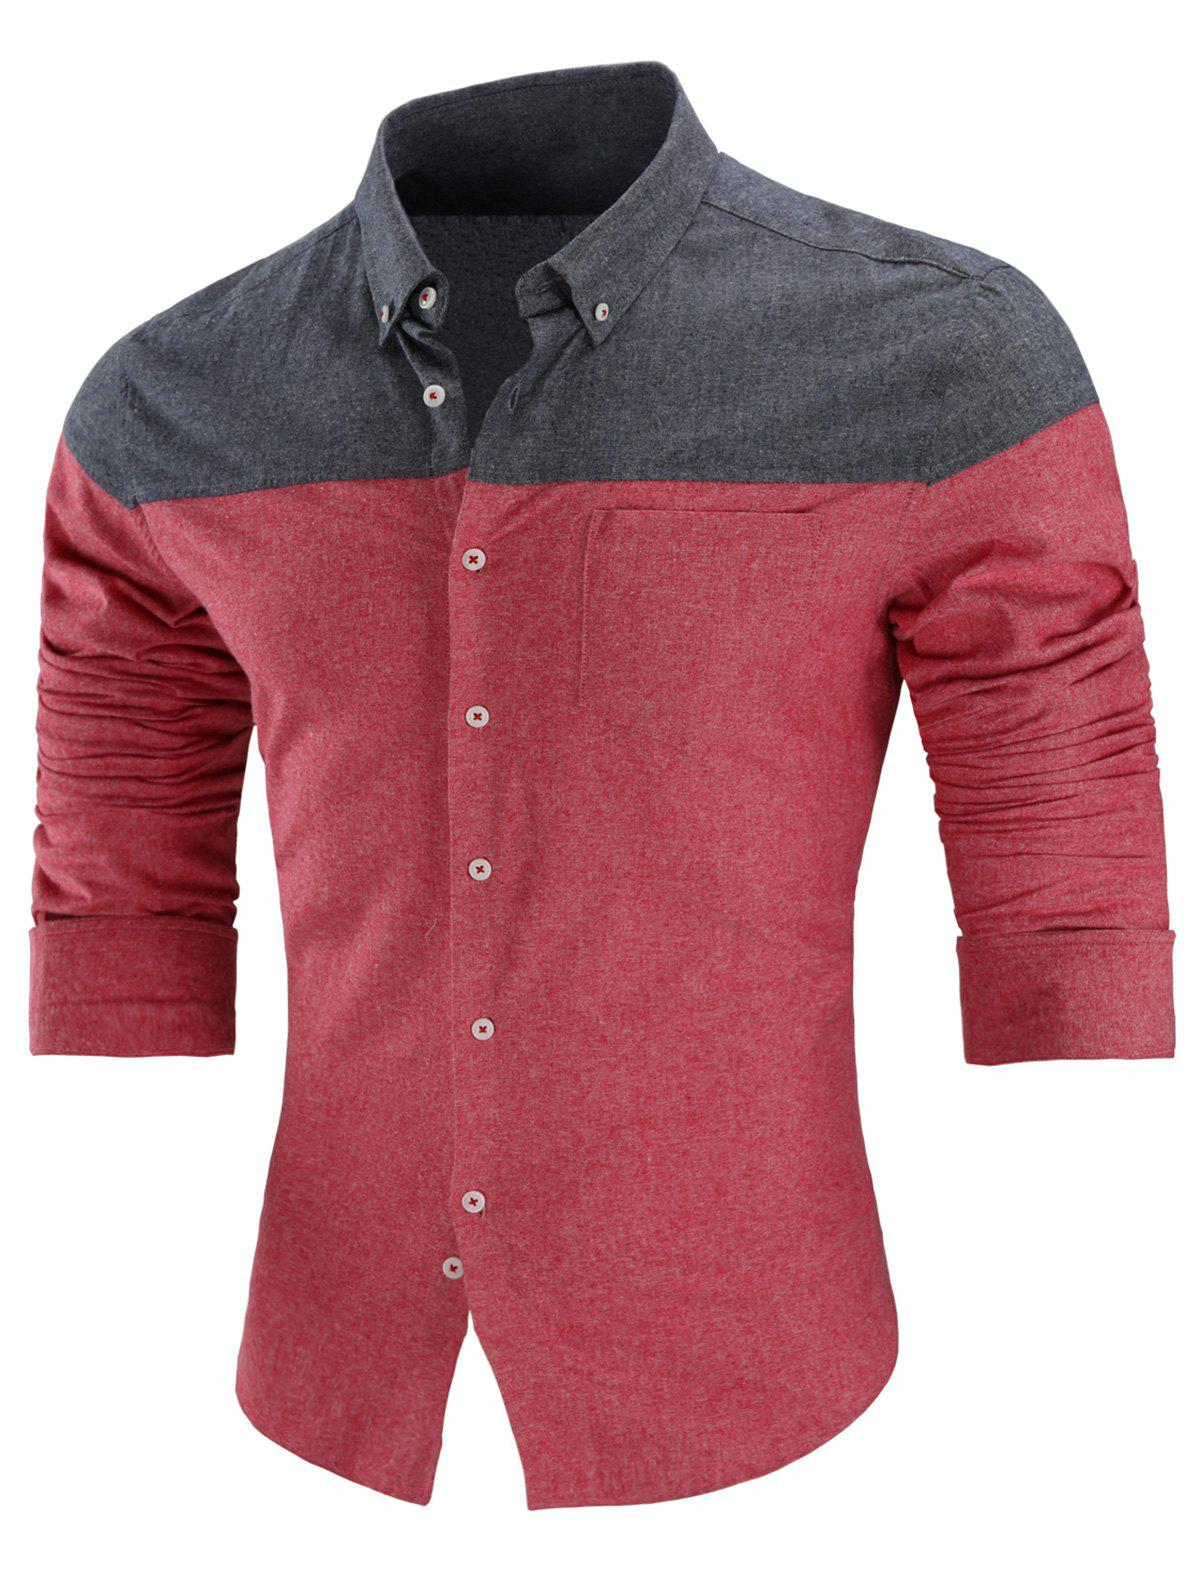 Trendy Long Sleeve Two Tone Button Down Shirt